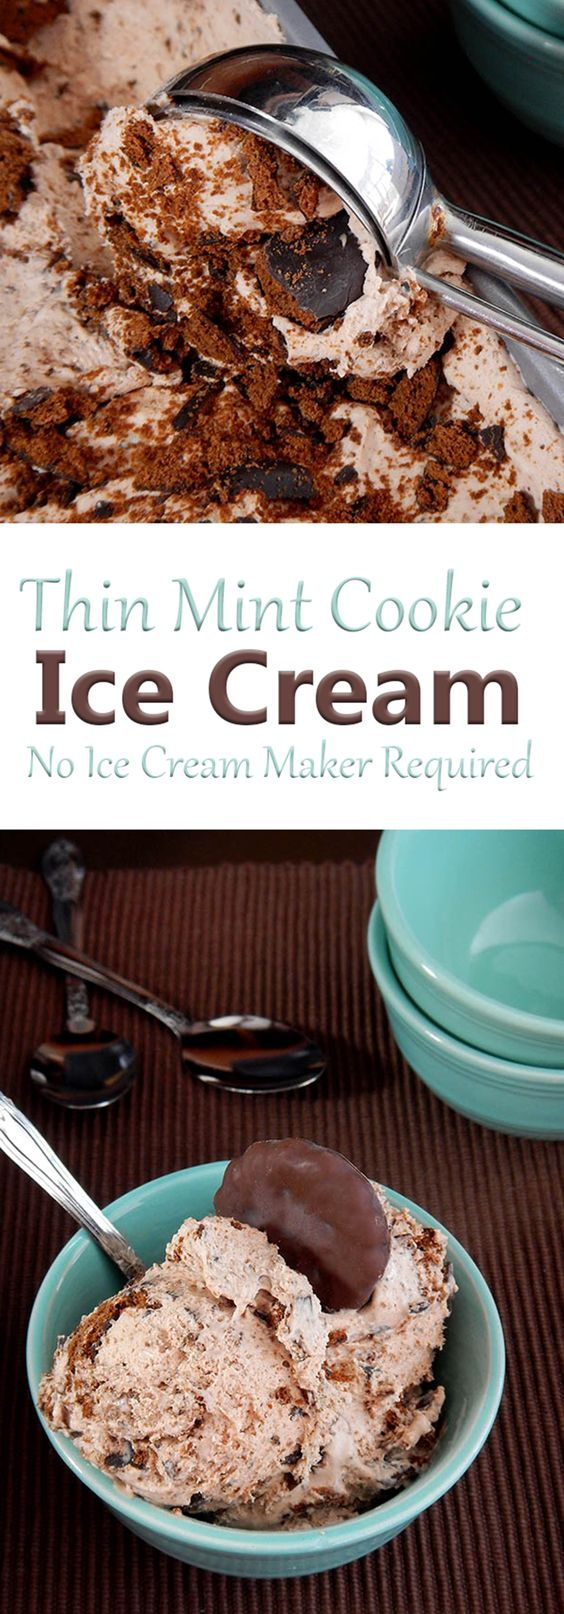 cream churn ice cream girl scouts scouts ice cream maker mint ice easy ...